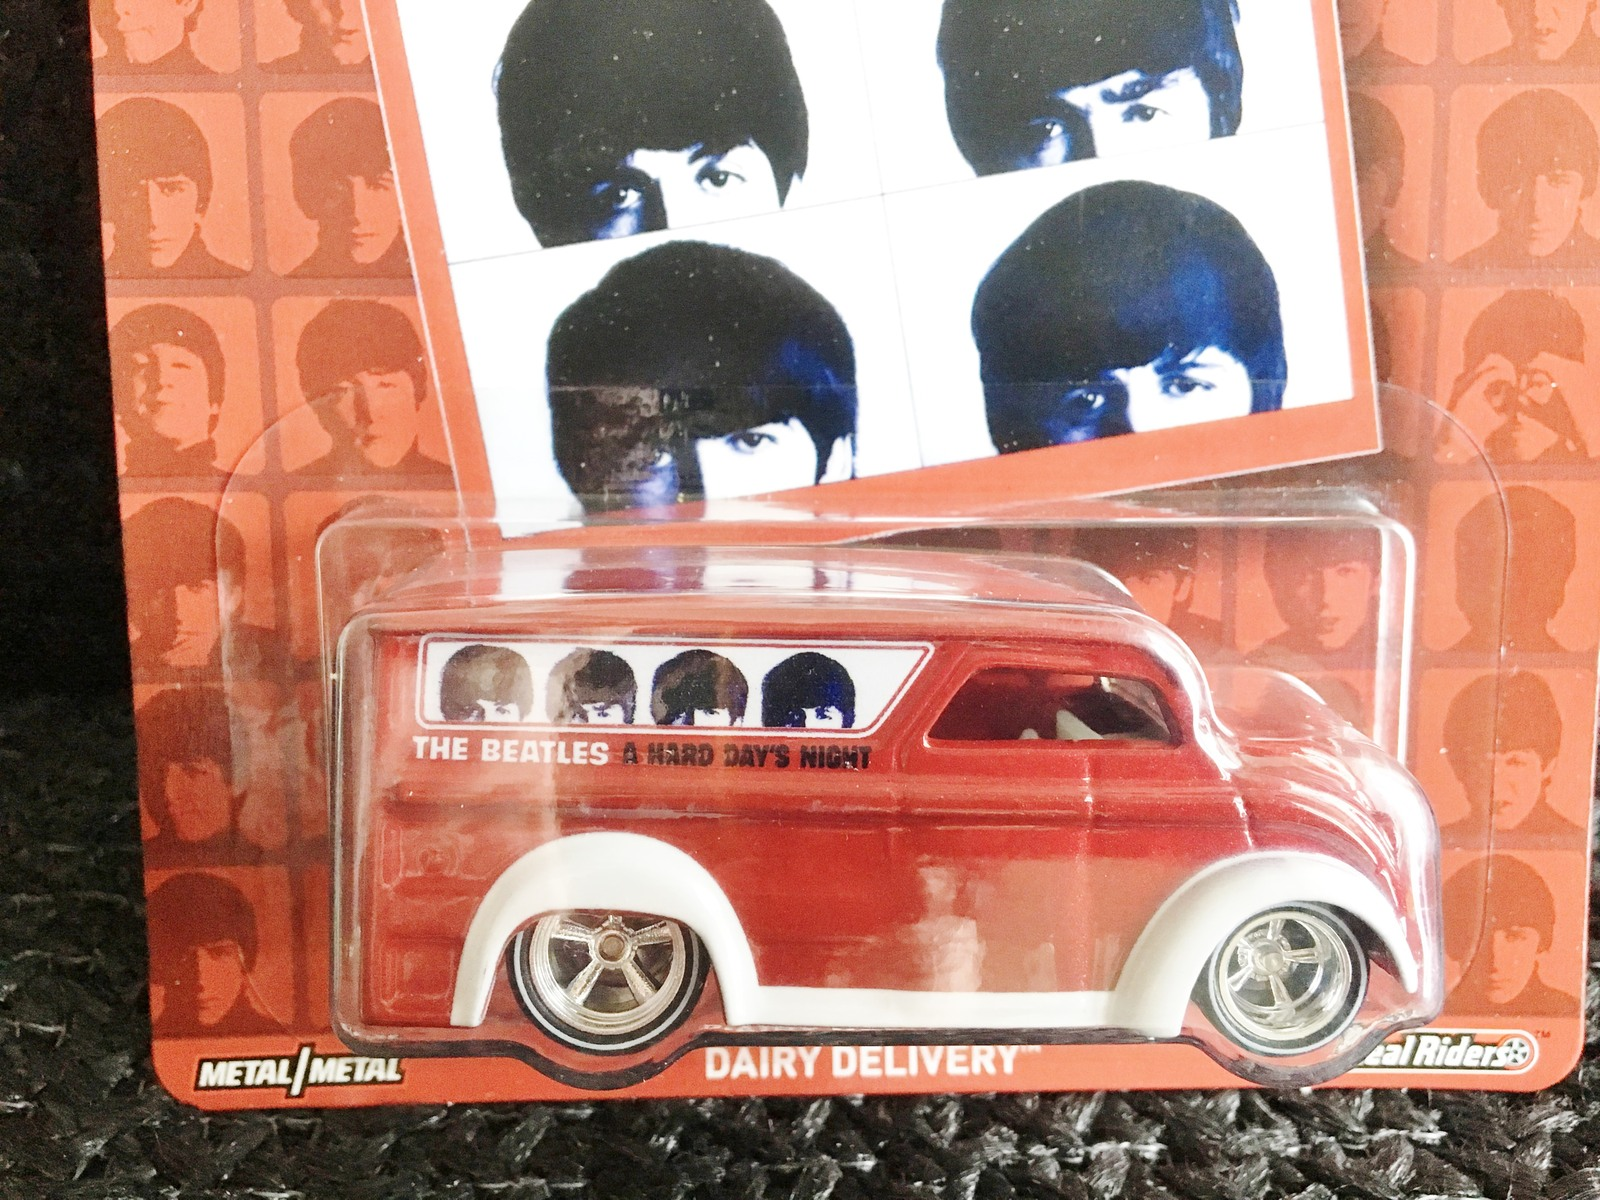 Hot Wheels The Beatles ALBUM A HARD DAYS NIGHT DAIRY DELIVERY Metal RealRider